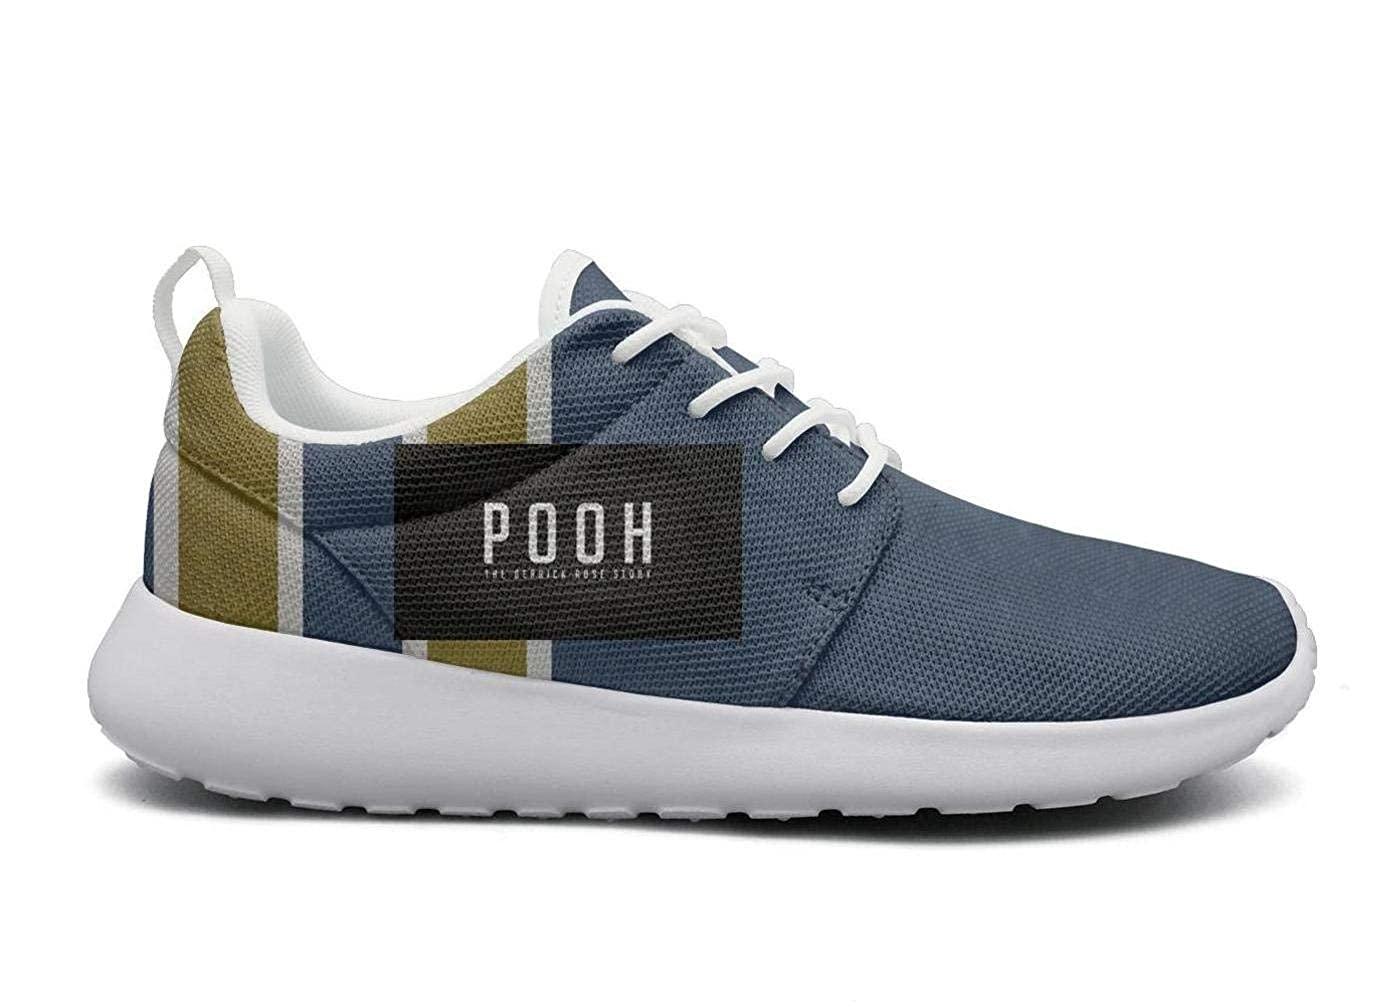 Womens Pooh-The-Derrick-Rose-Story-Logo Fashion Sneaker Comfortable Low top Casual Canvas Walking Shoes momery Foam Cushioned